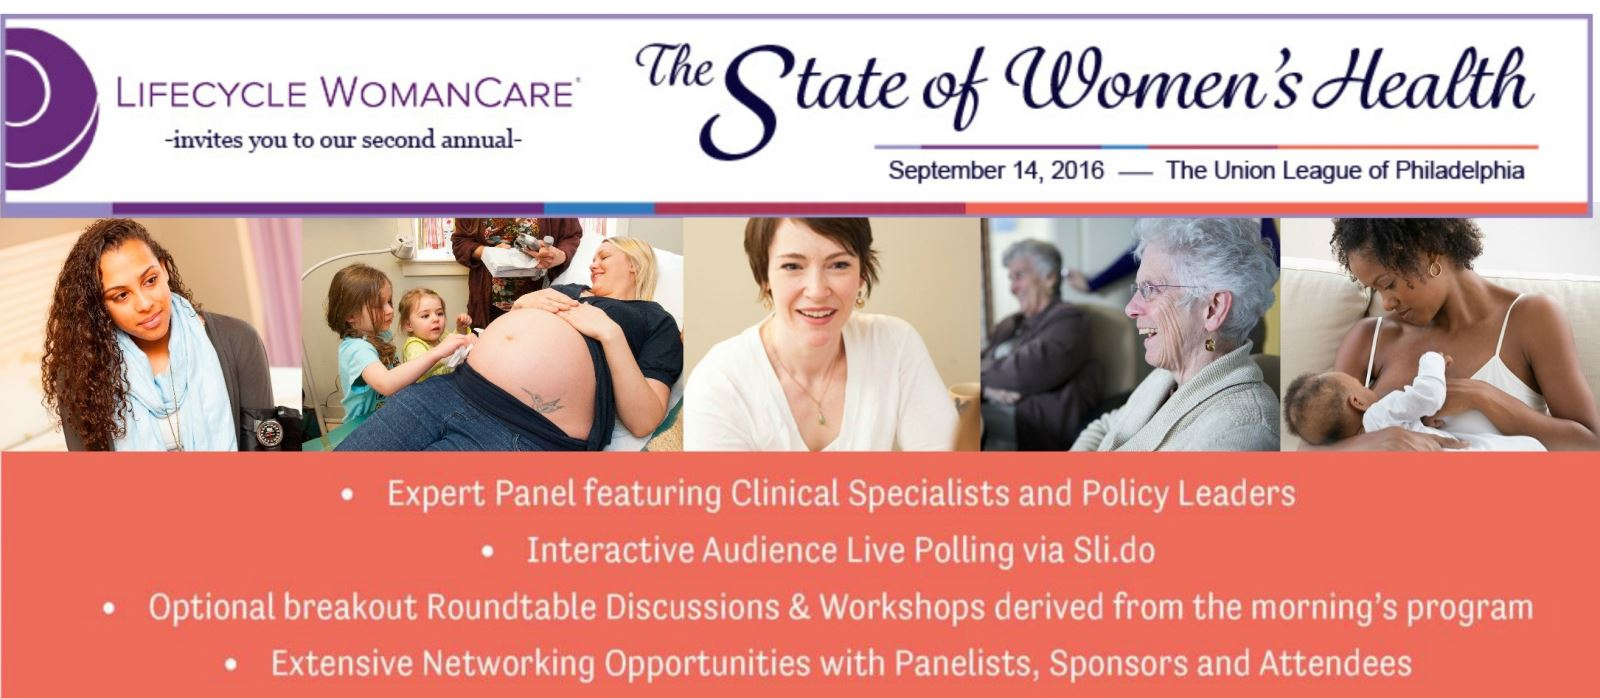 https://www.lifecyclewomancare.org/get-involved/events/the-state-of-womens-health-2016/